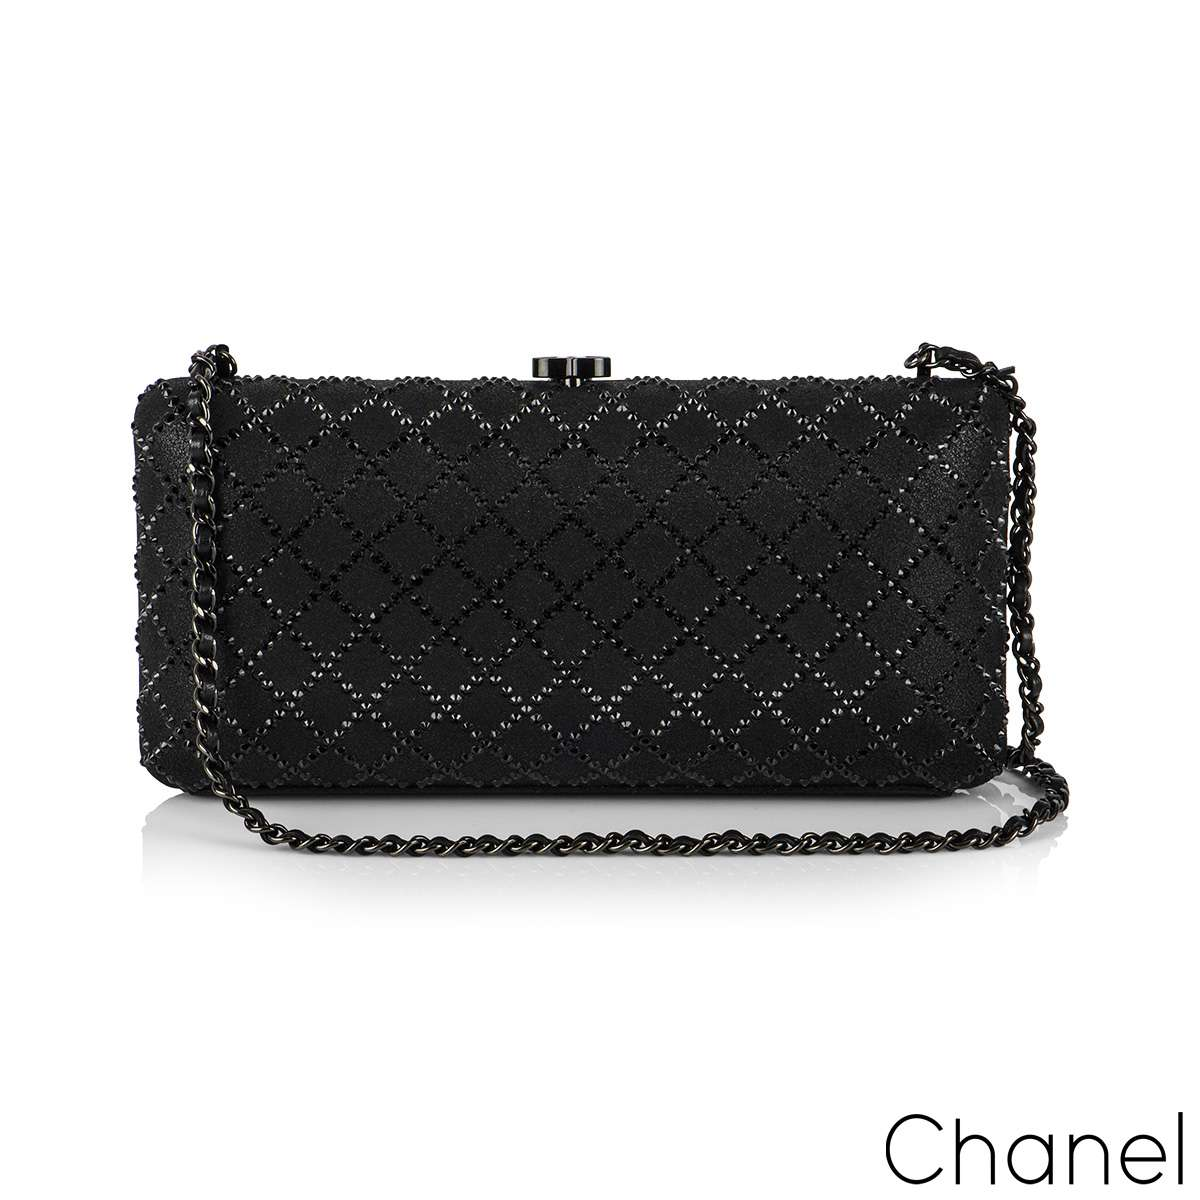 Chanel Black Iridescent Lambskin Crystal Quilted Clutch